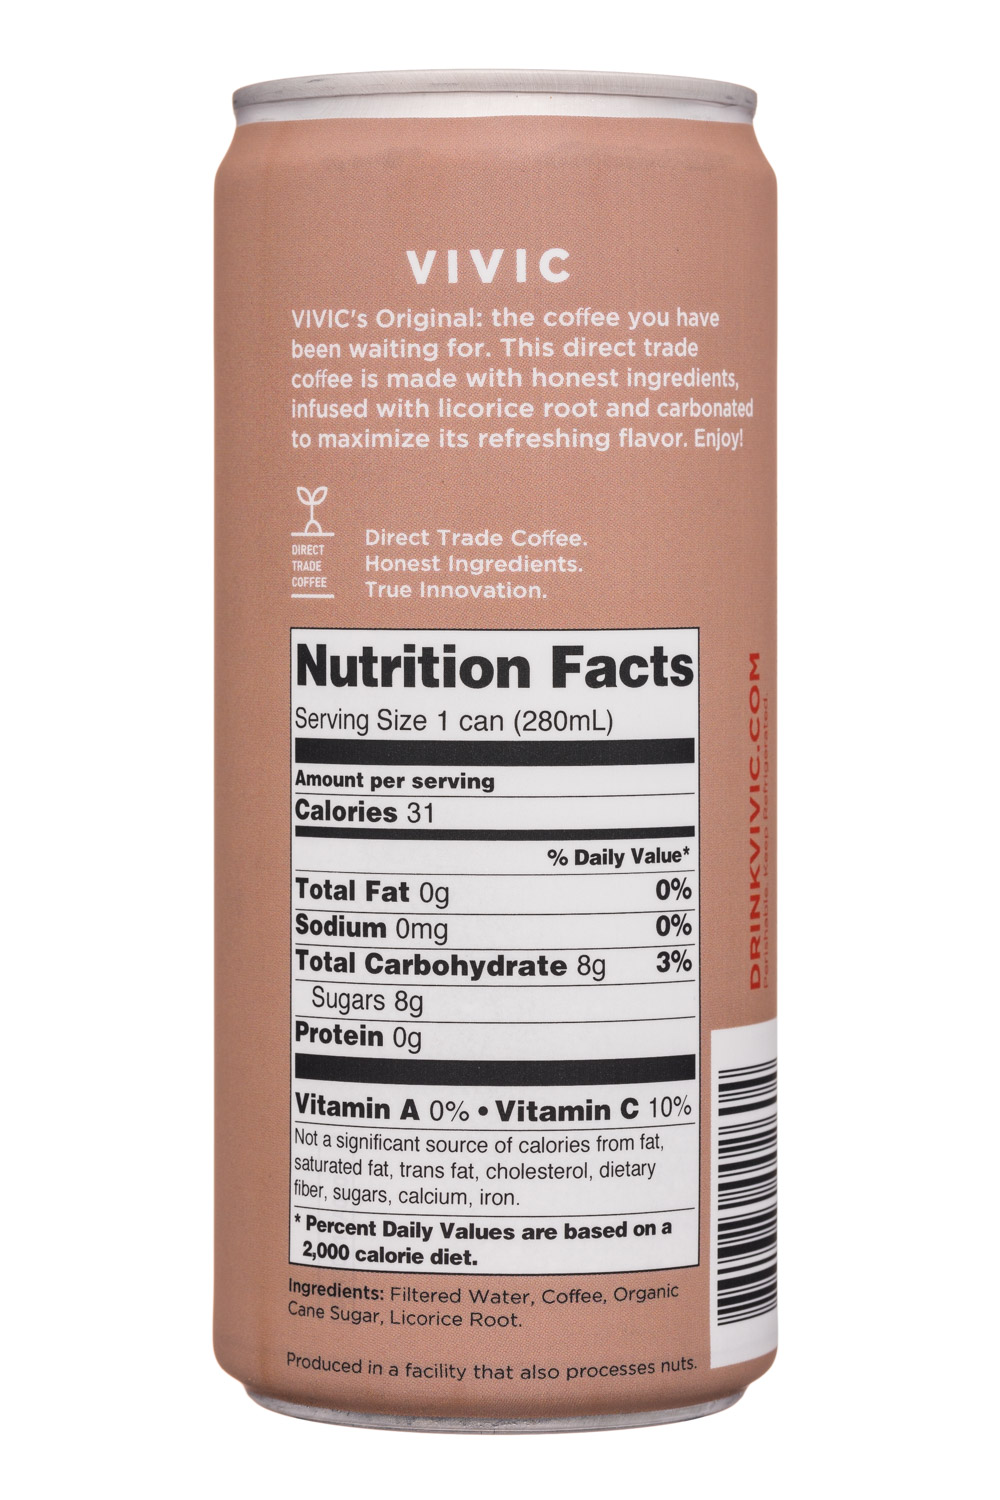 Vivic: Vivic-10oz-SparklingCoffee-Original-Facts